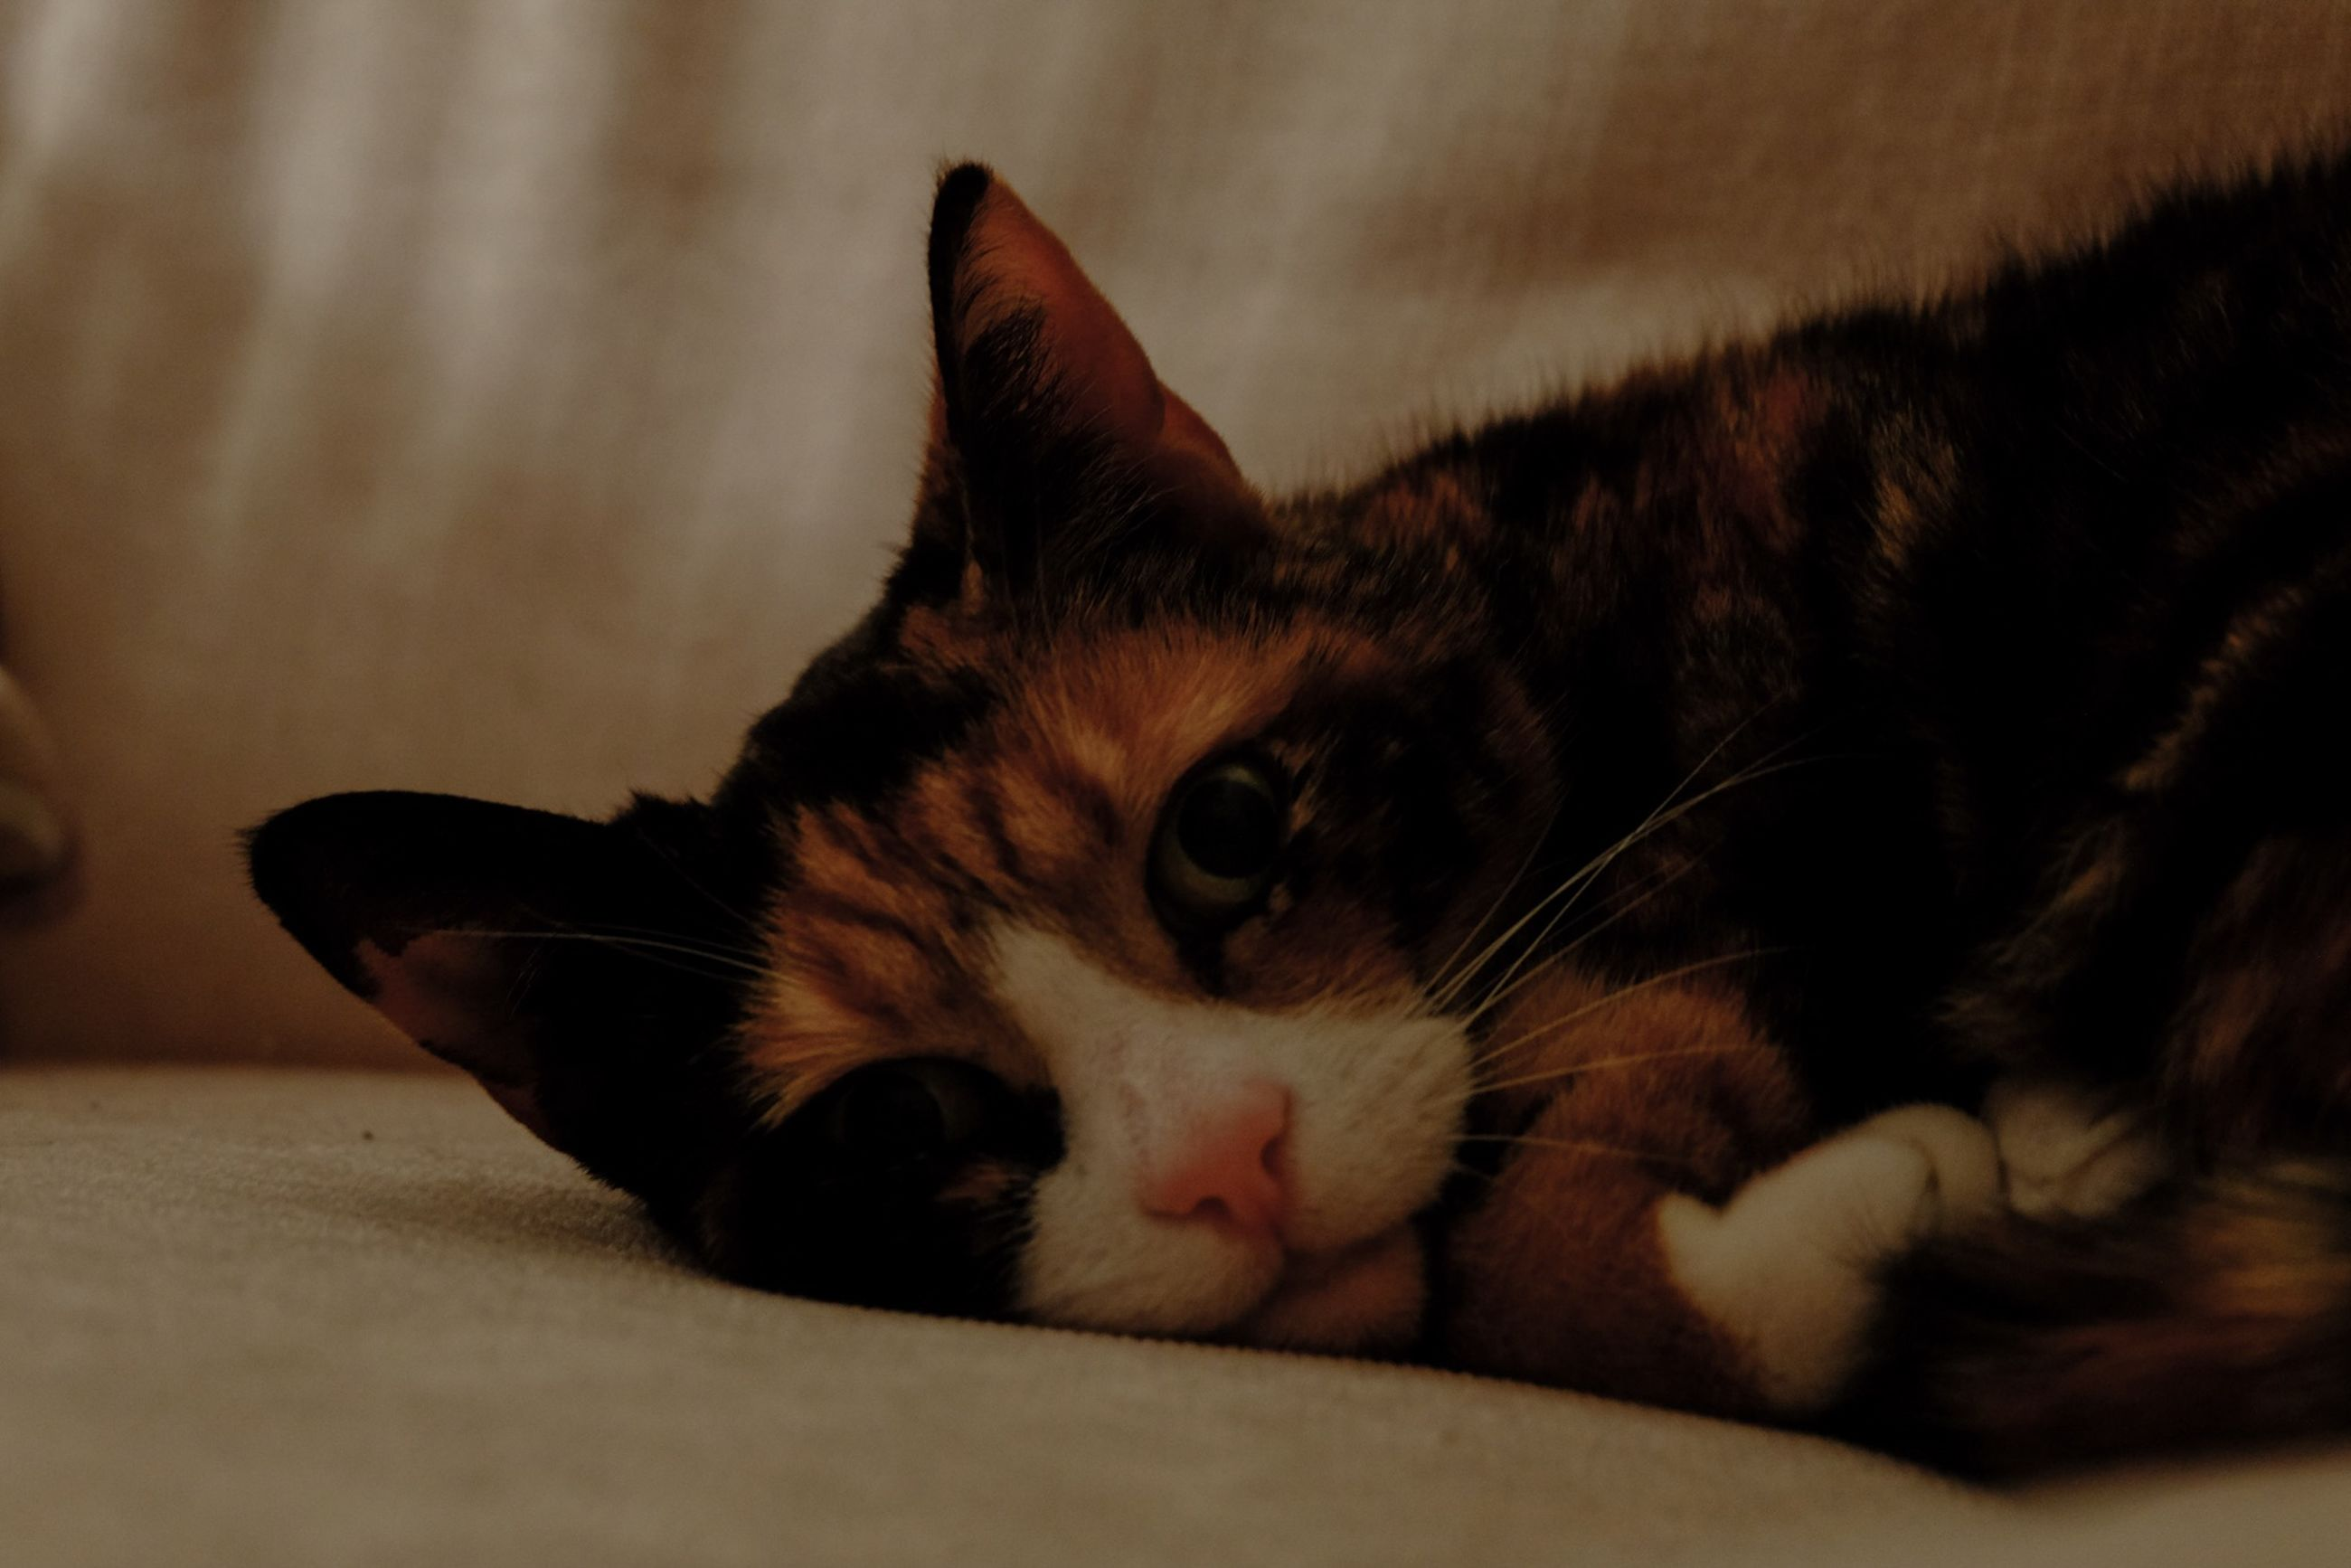 domestic cat, pets, domestic animals, cat, indoors, one animal, animal themes, feline, mammal, whisker, relaxation, close-up, home interior, looking at camera, portrait, lying down, resting, selective focus, animal head, focus on foreground